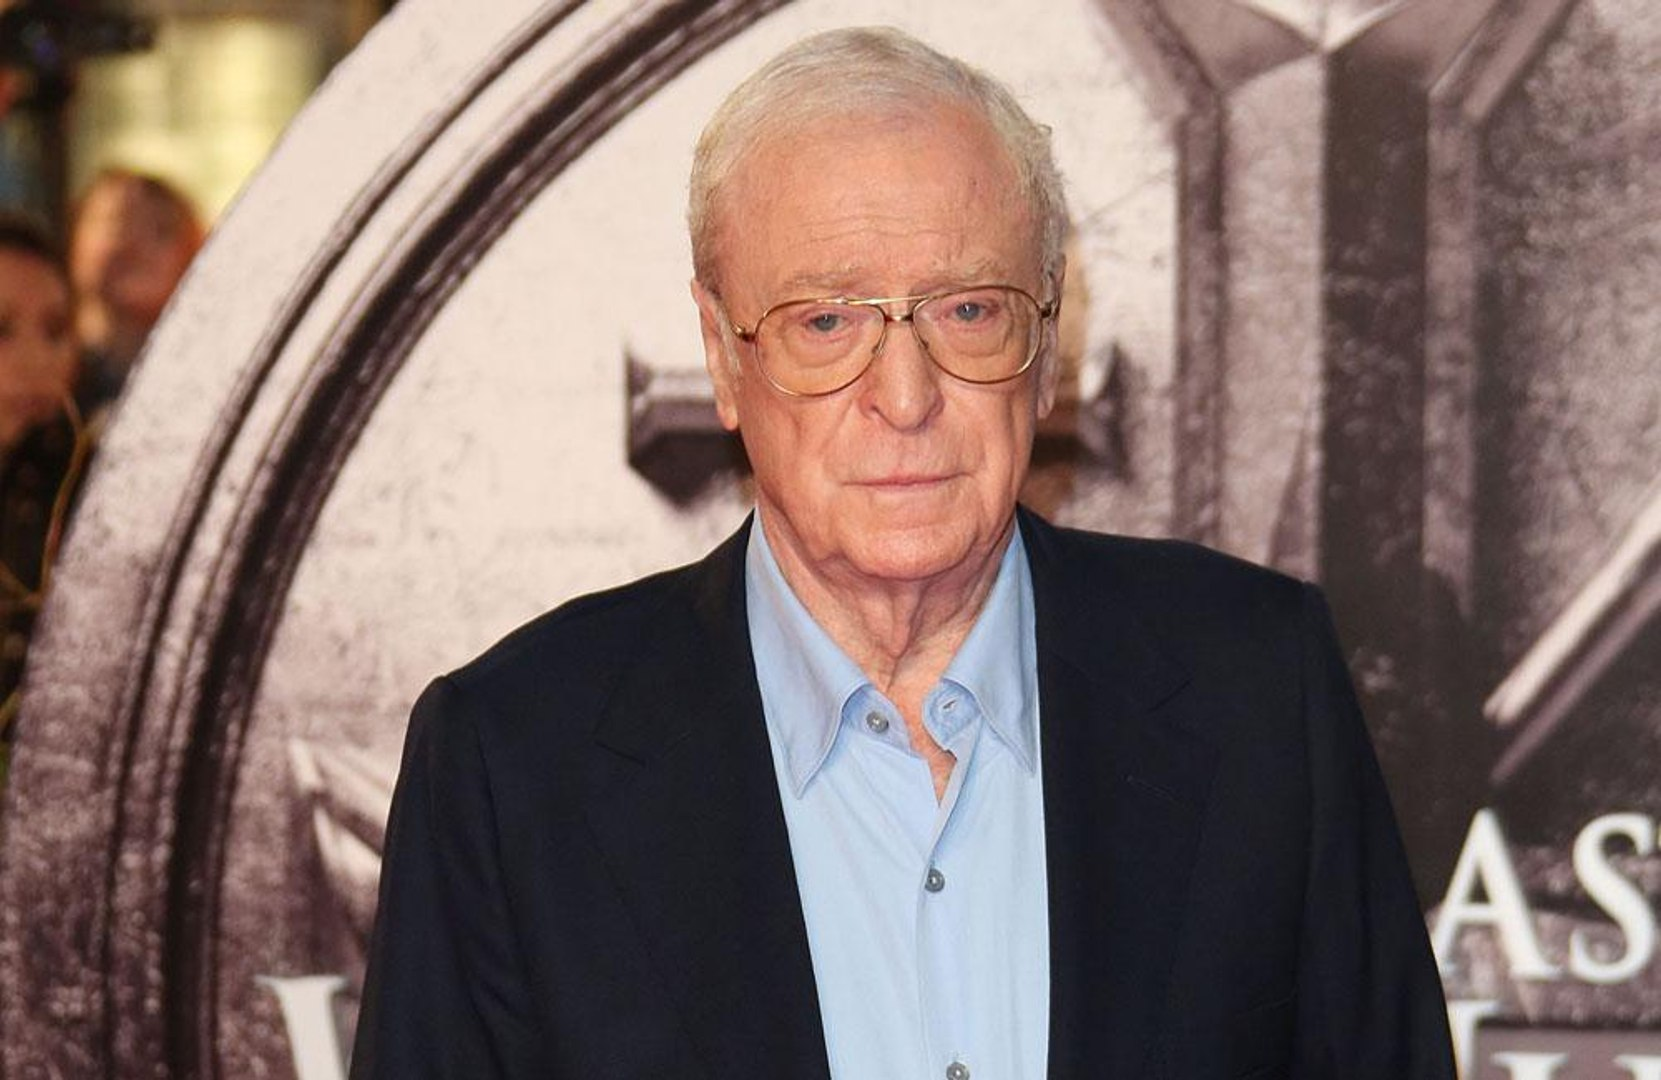 Michael Caine nominated for National Films Awards UK honour